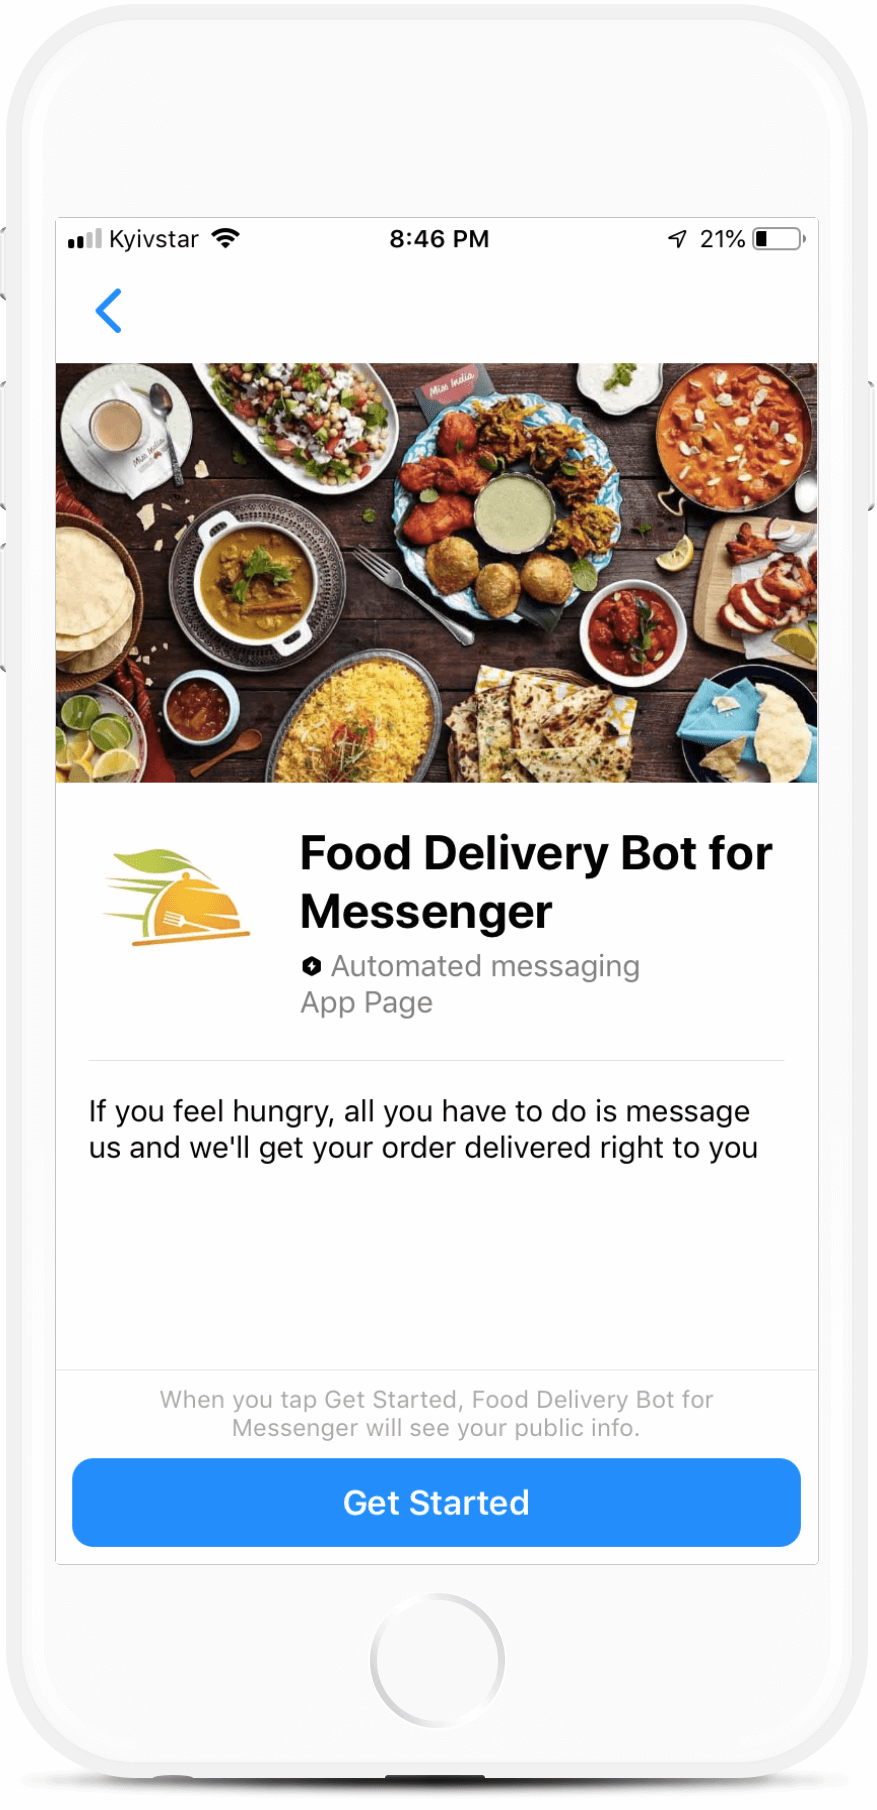 Food Ordering and Delivery Bot for Restaurants and Food Stores